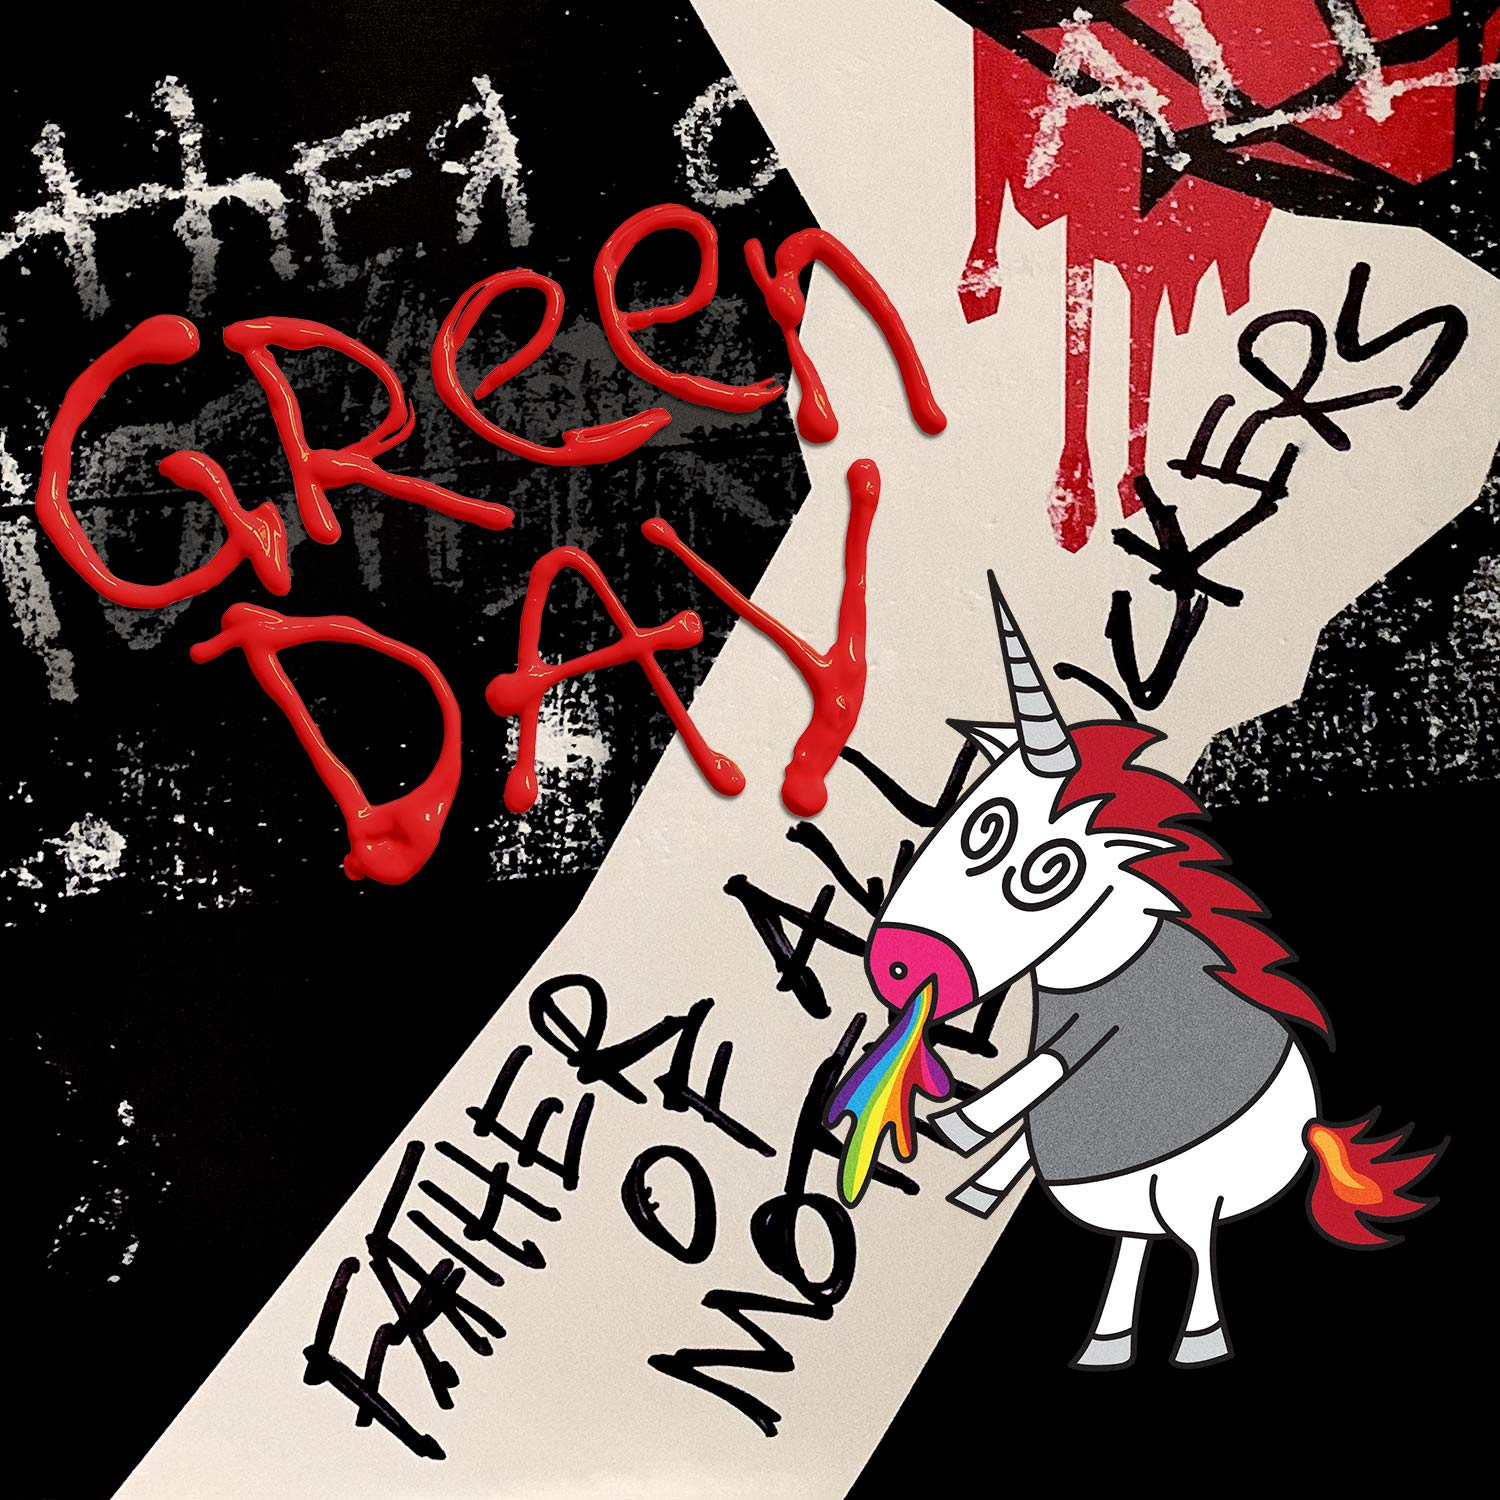 Green Day - Father of All... [single] (2019)